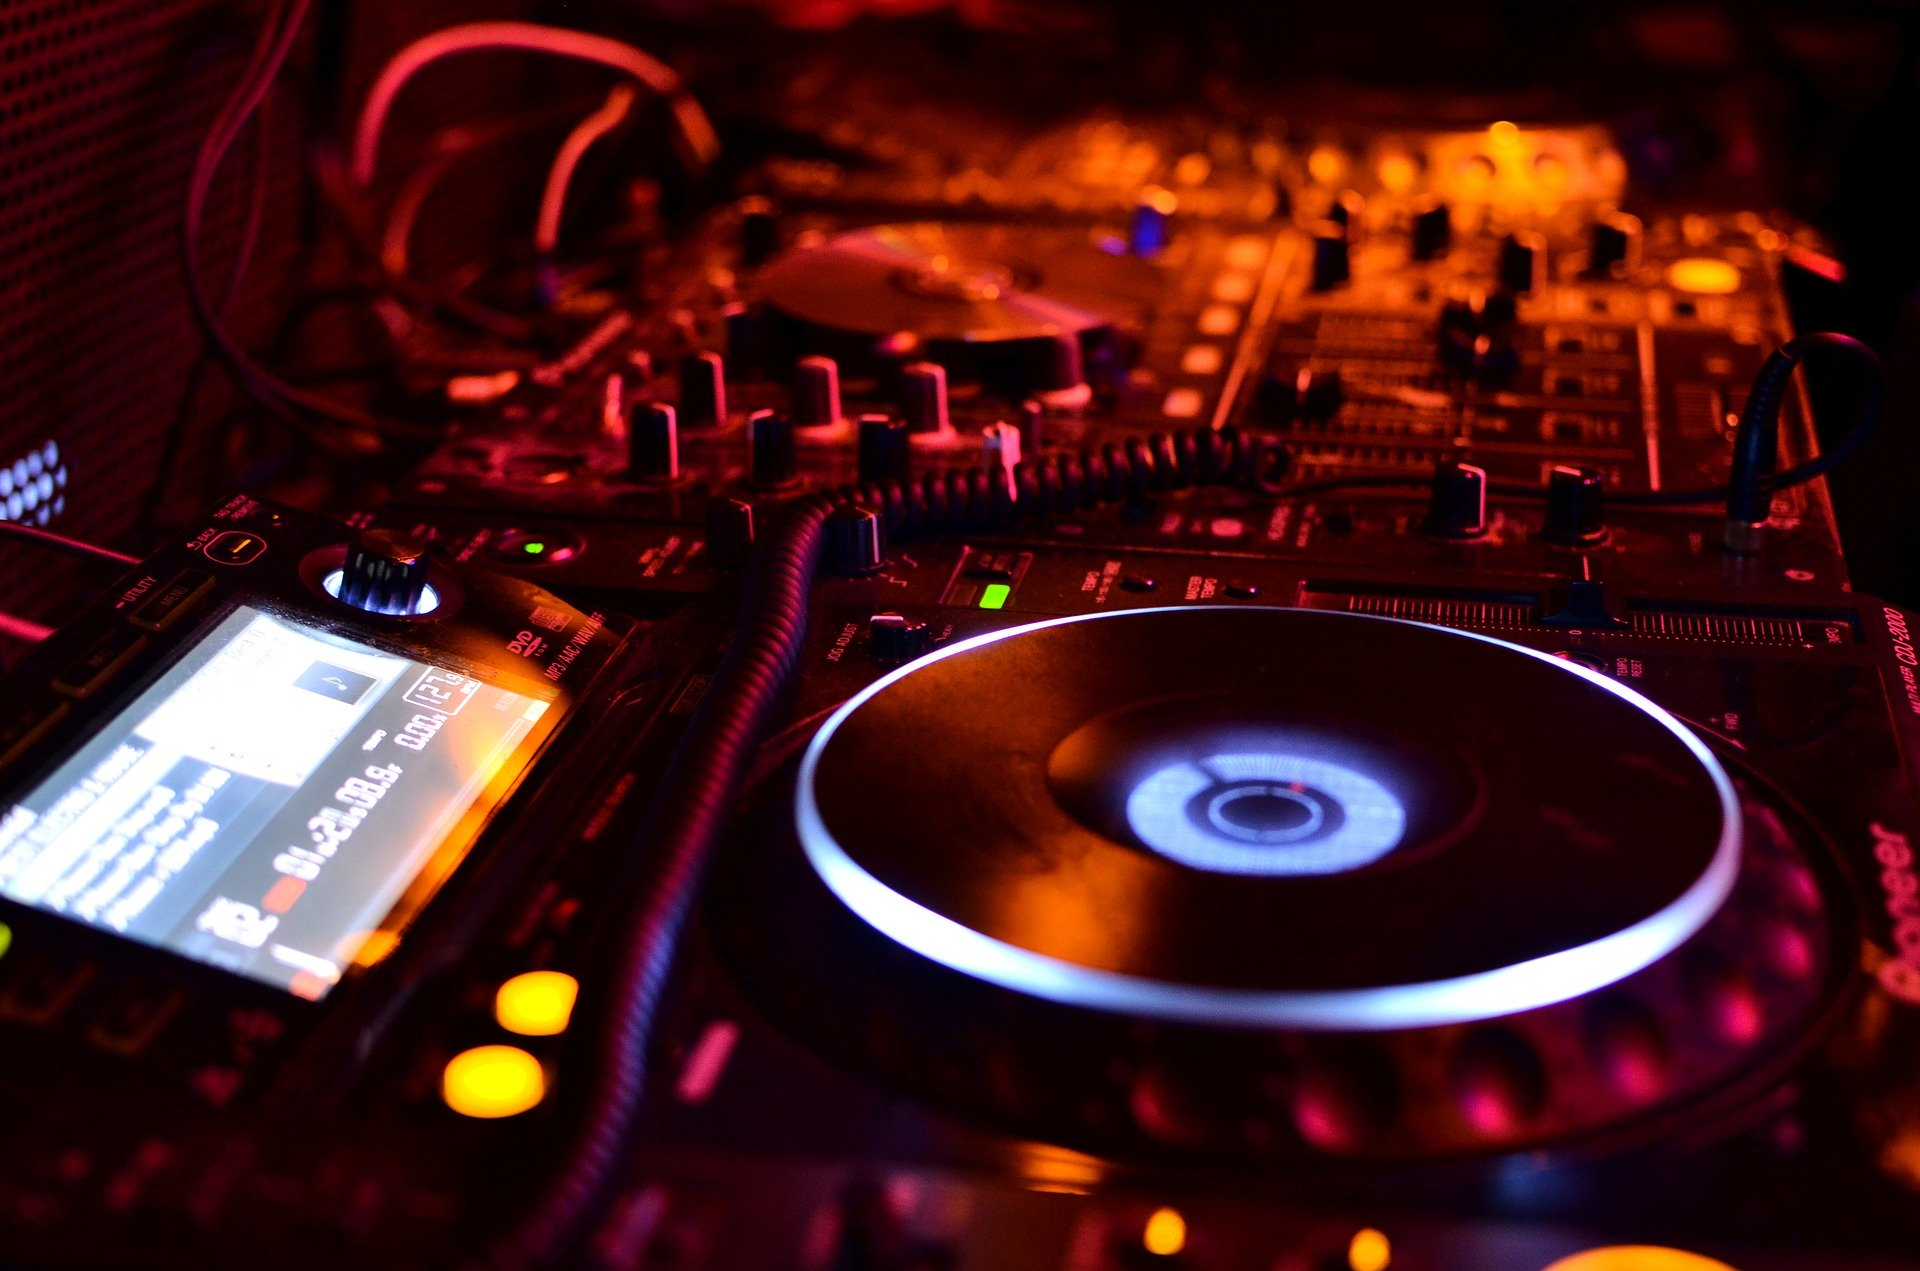 hire a professional dj for your event